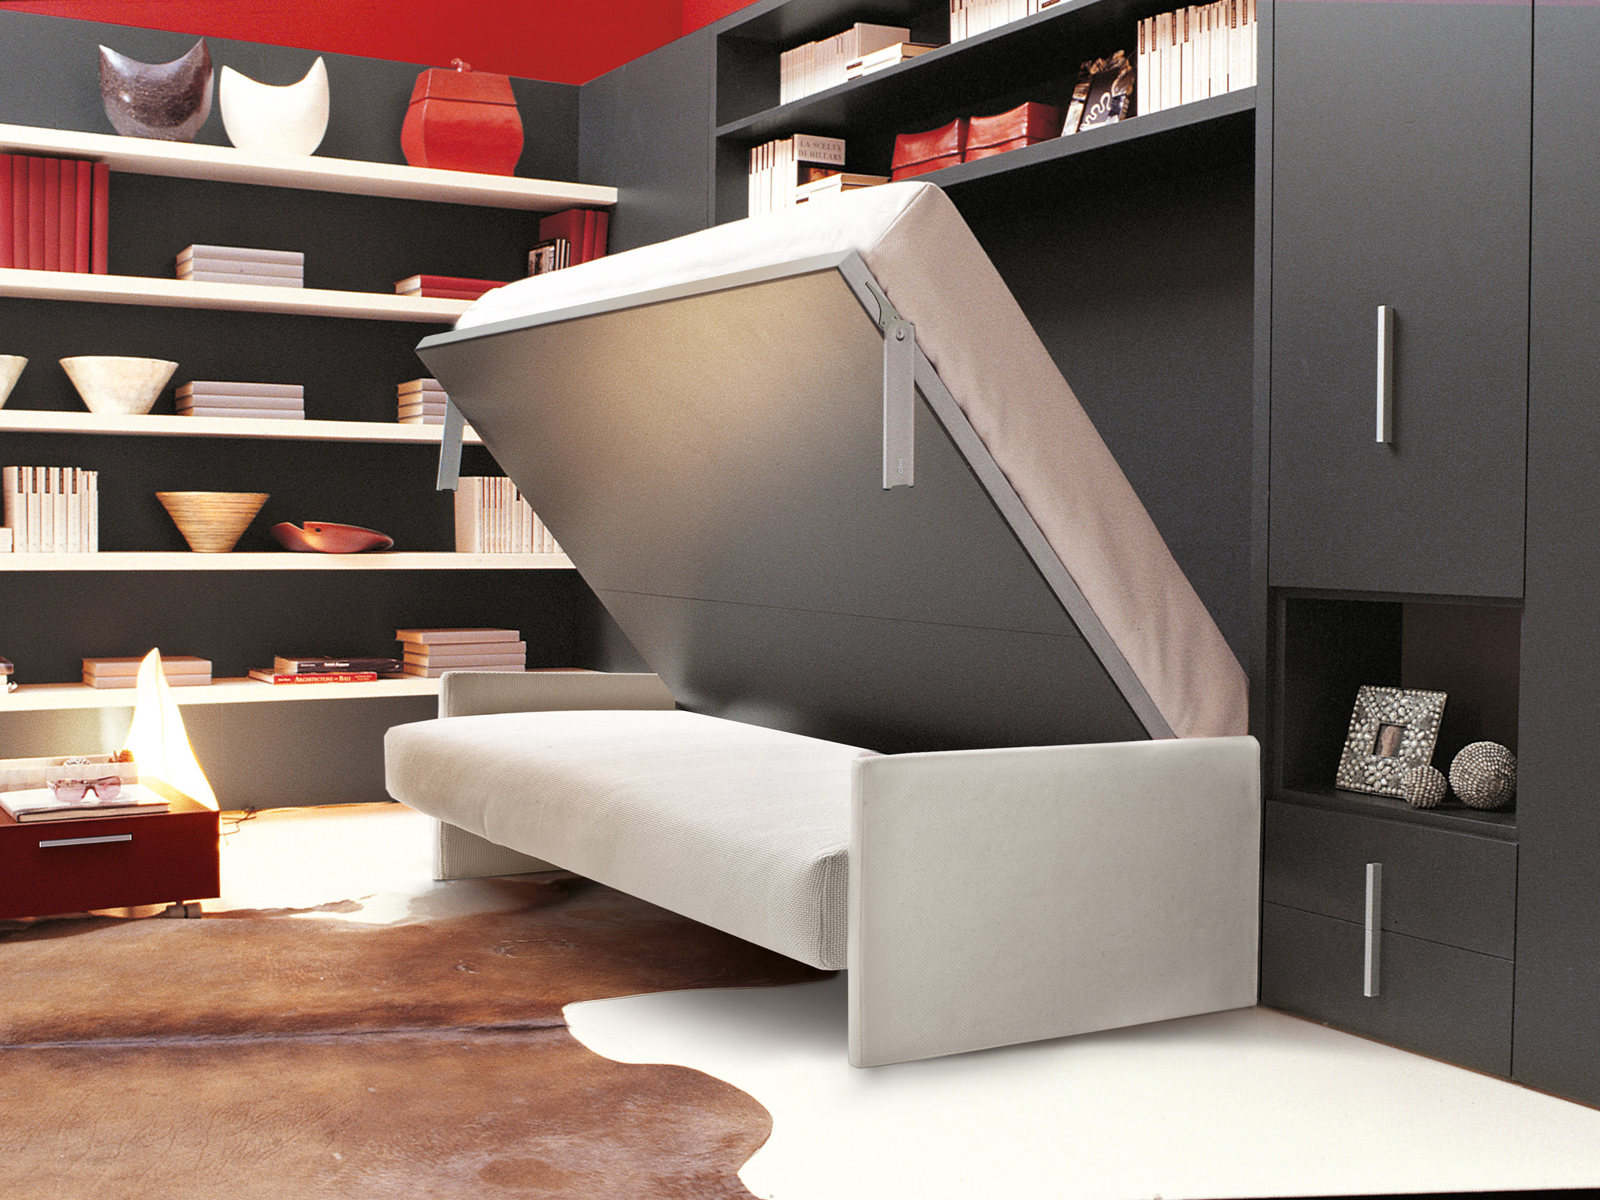 Storage wall with fold away bed CIRCE SOFA By CLEI design Giulio